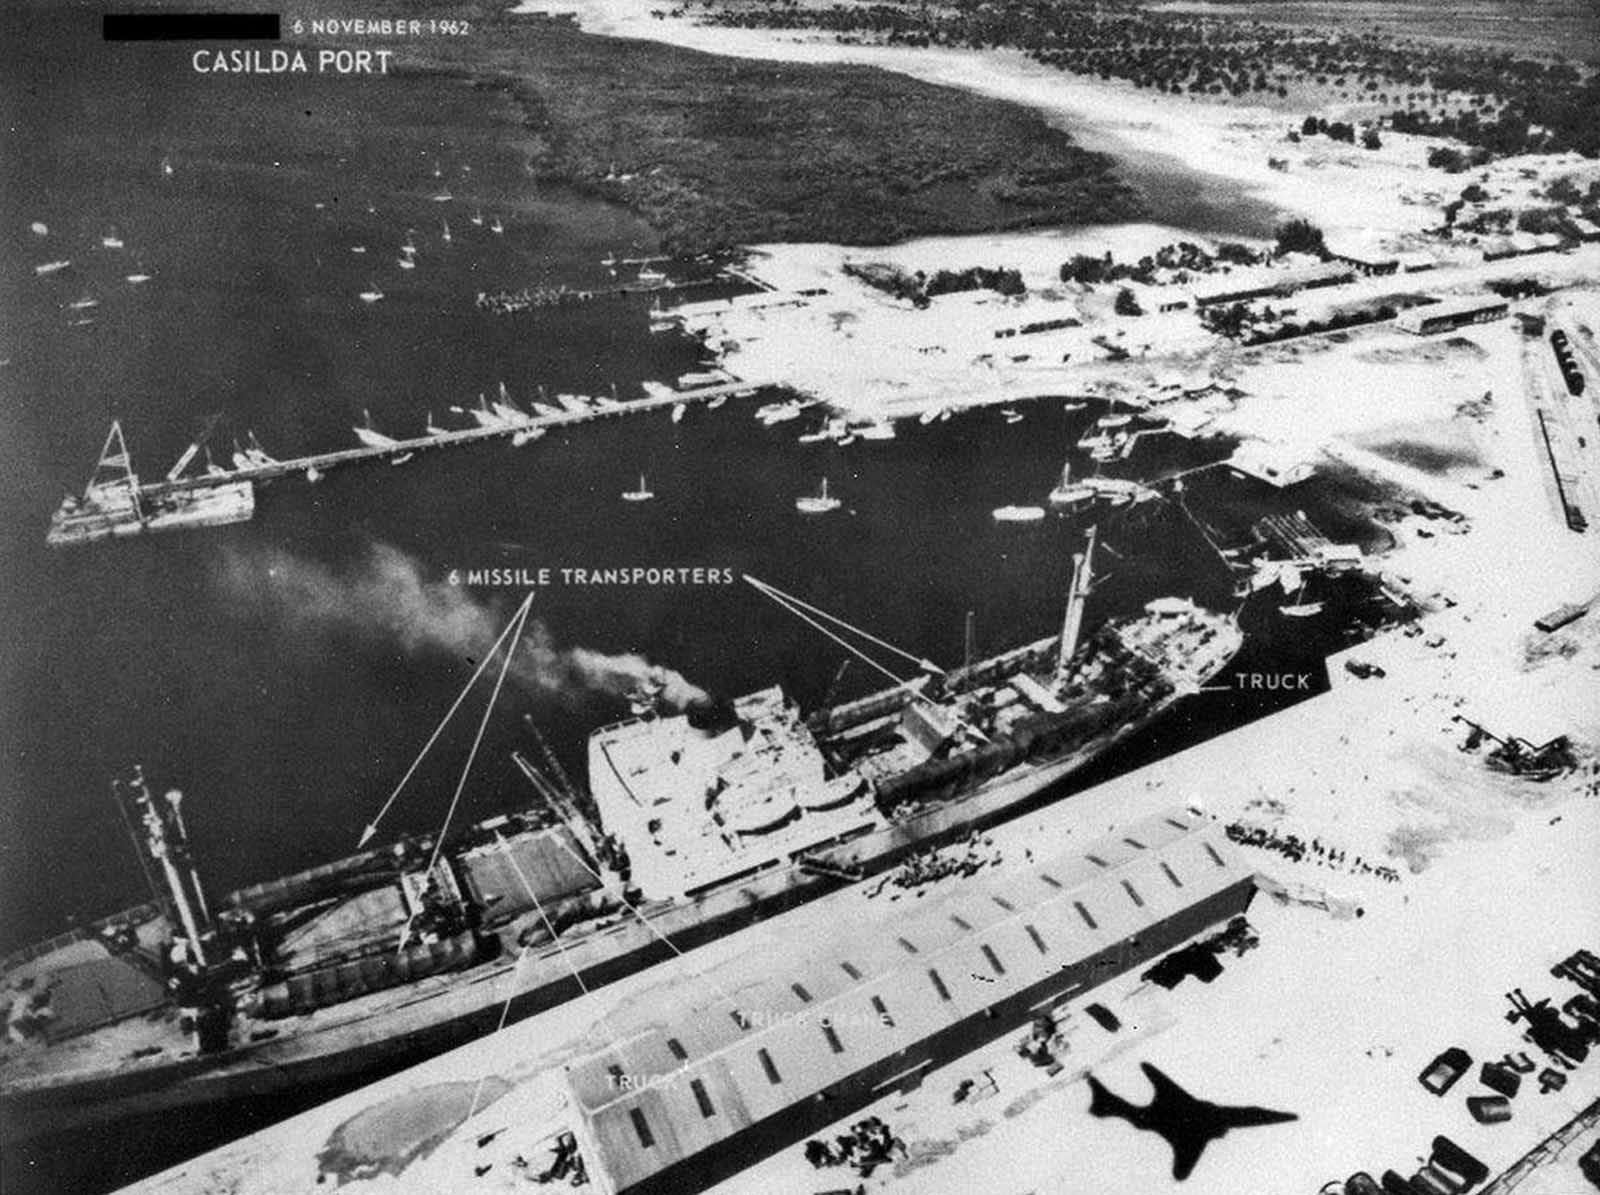 Soviet personnel and six missile transporters loaded onto a Soviet ship in Cuba's Casilda port, on November 6, 1962. Note shadow at lower right of the RF-101 reconnaissance jet taking the photograph.